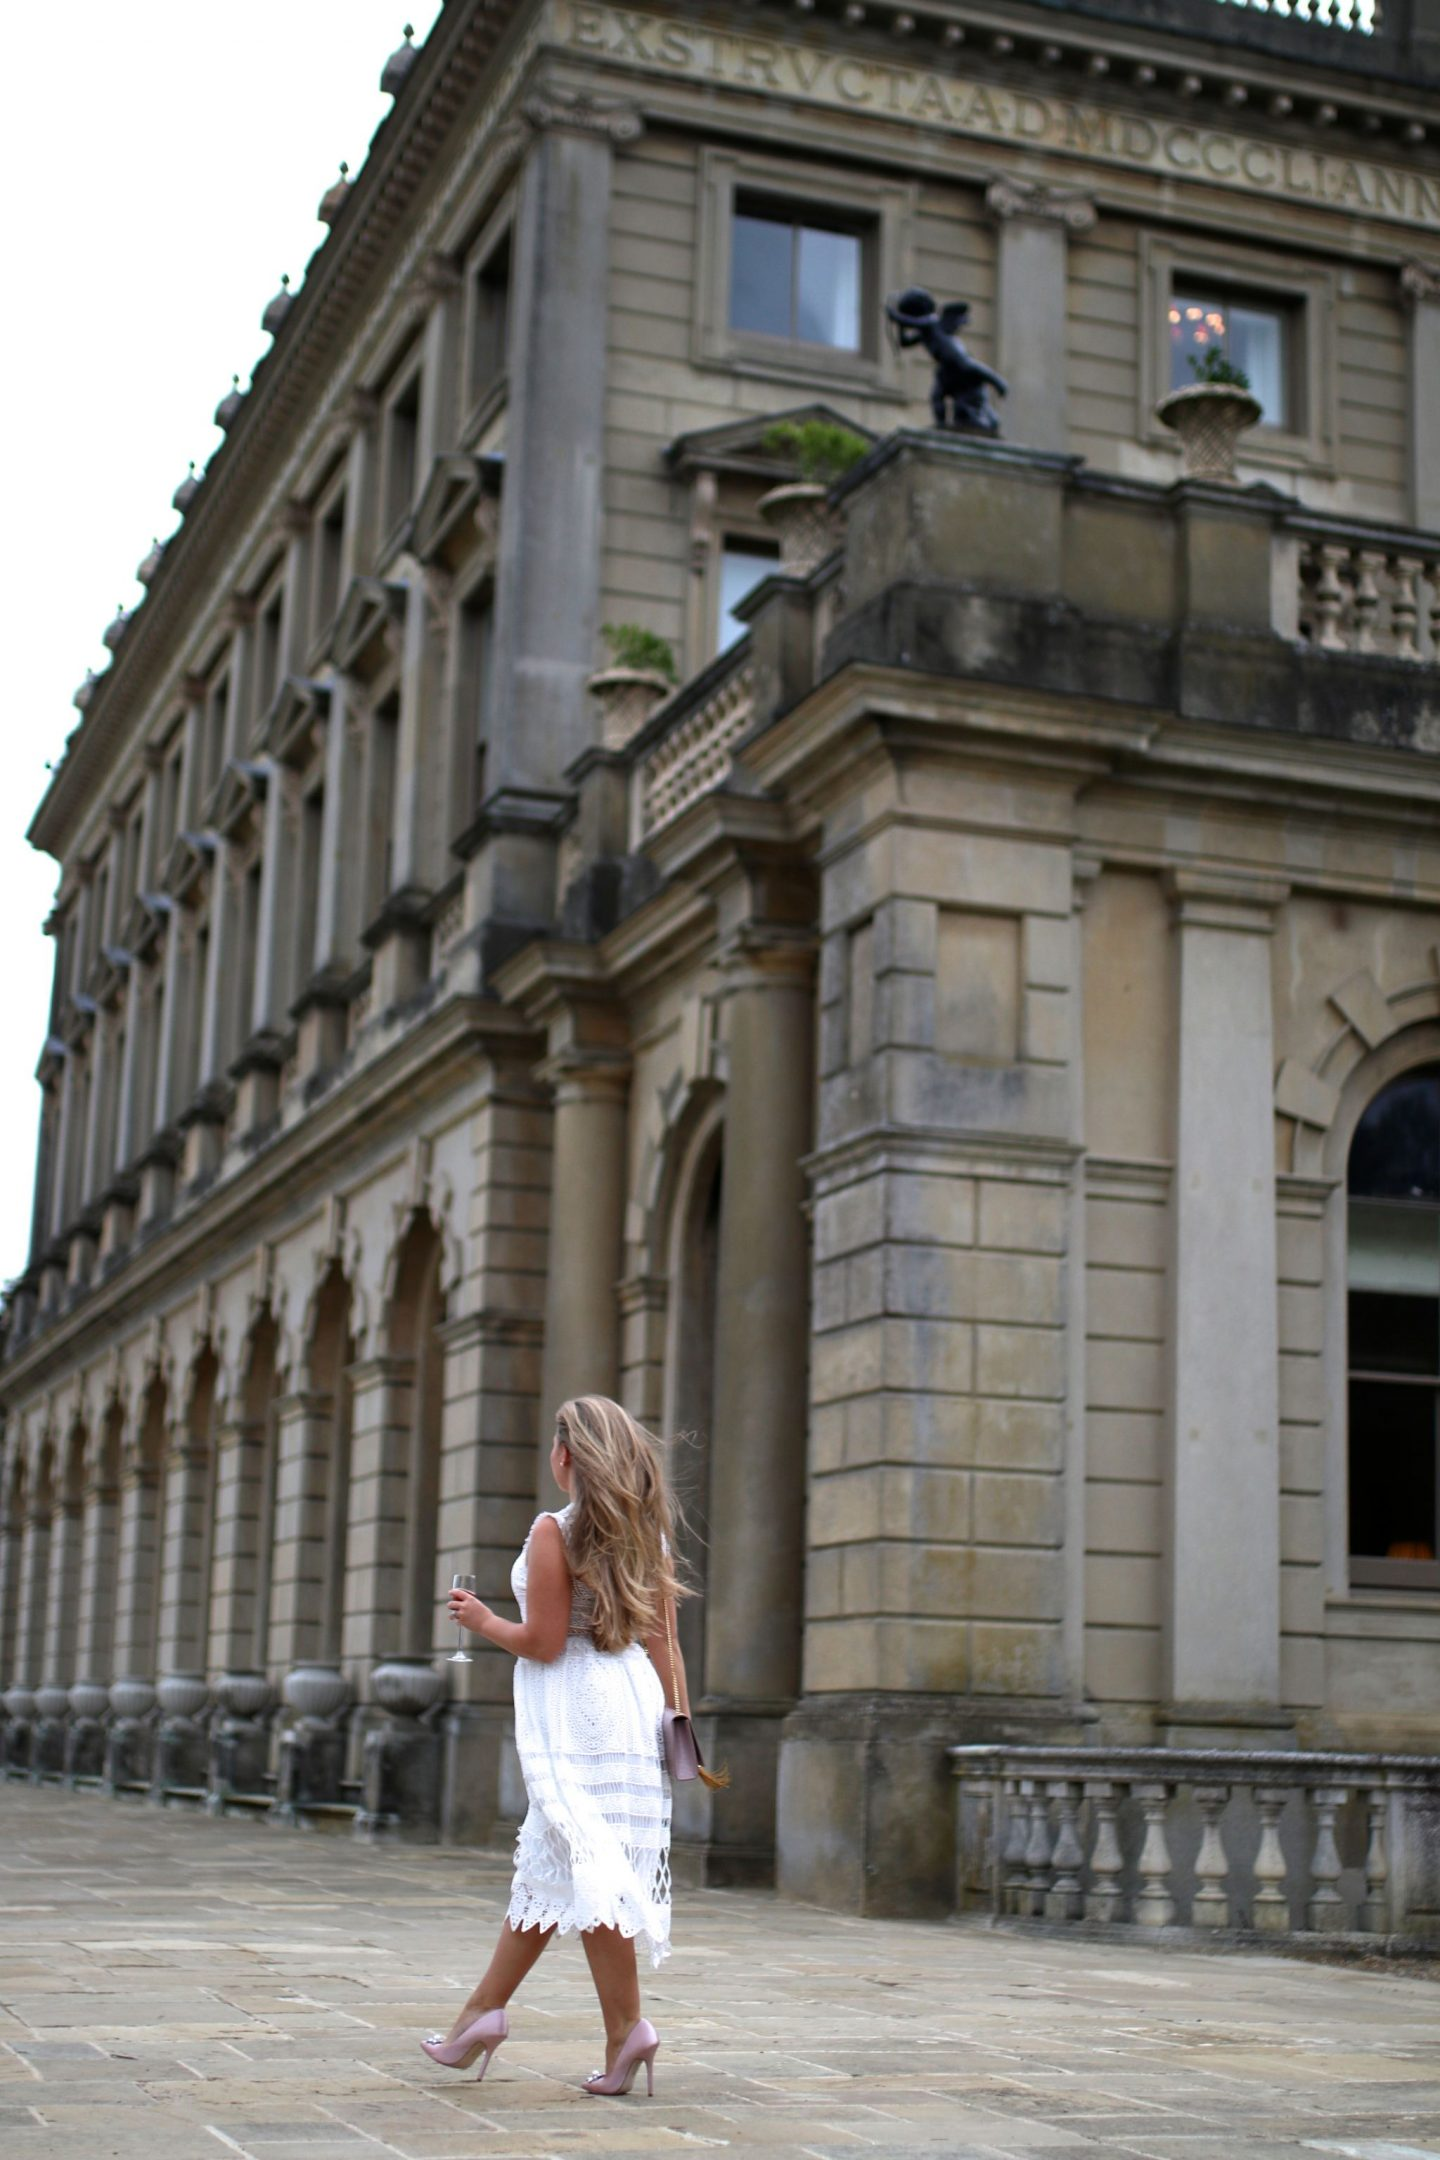 Katie Heath, KALANCHOE, Cliveden House, What to pack for a 1 night stay